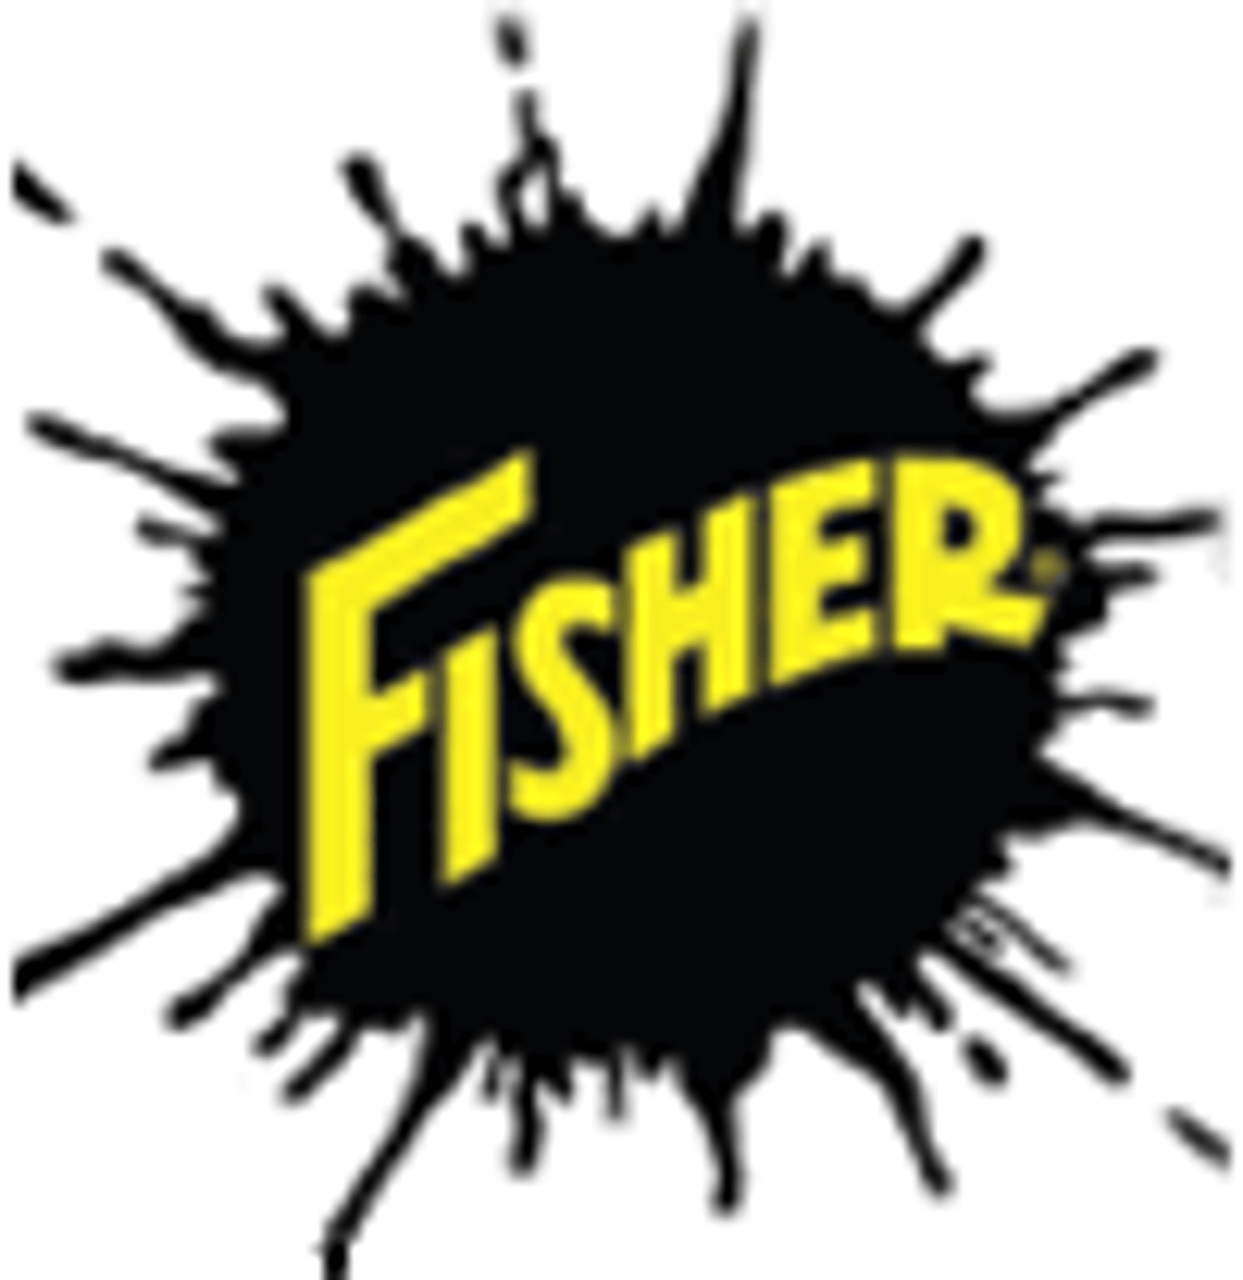 5523K - 84844  FISHER - WESTERN PACKET - 3/4 X 2-3/16 MACH PIN W/ COTTER